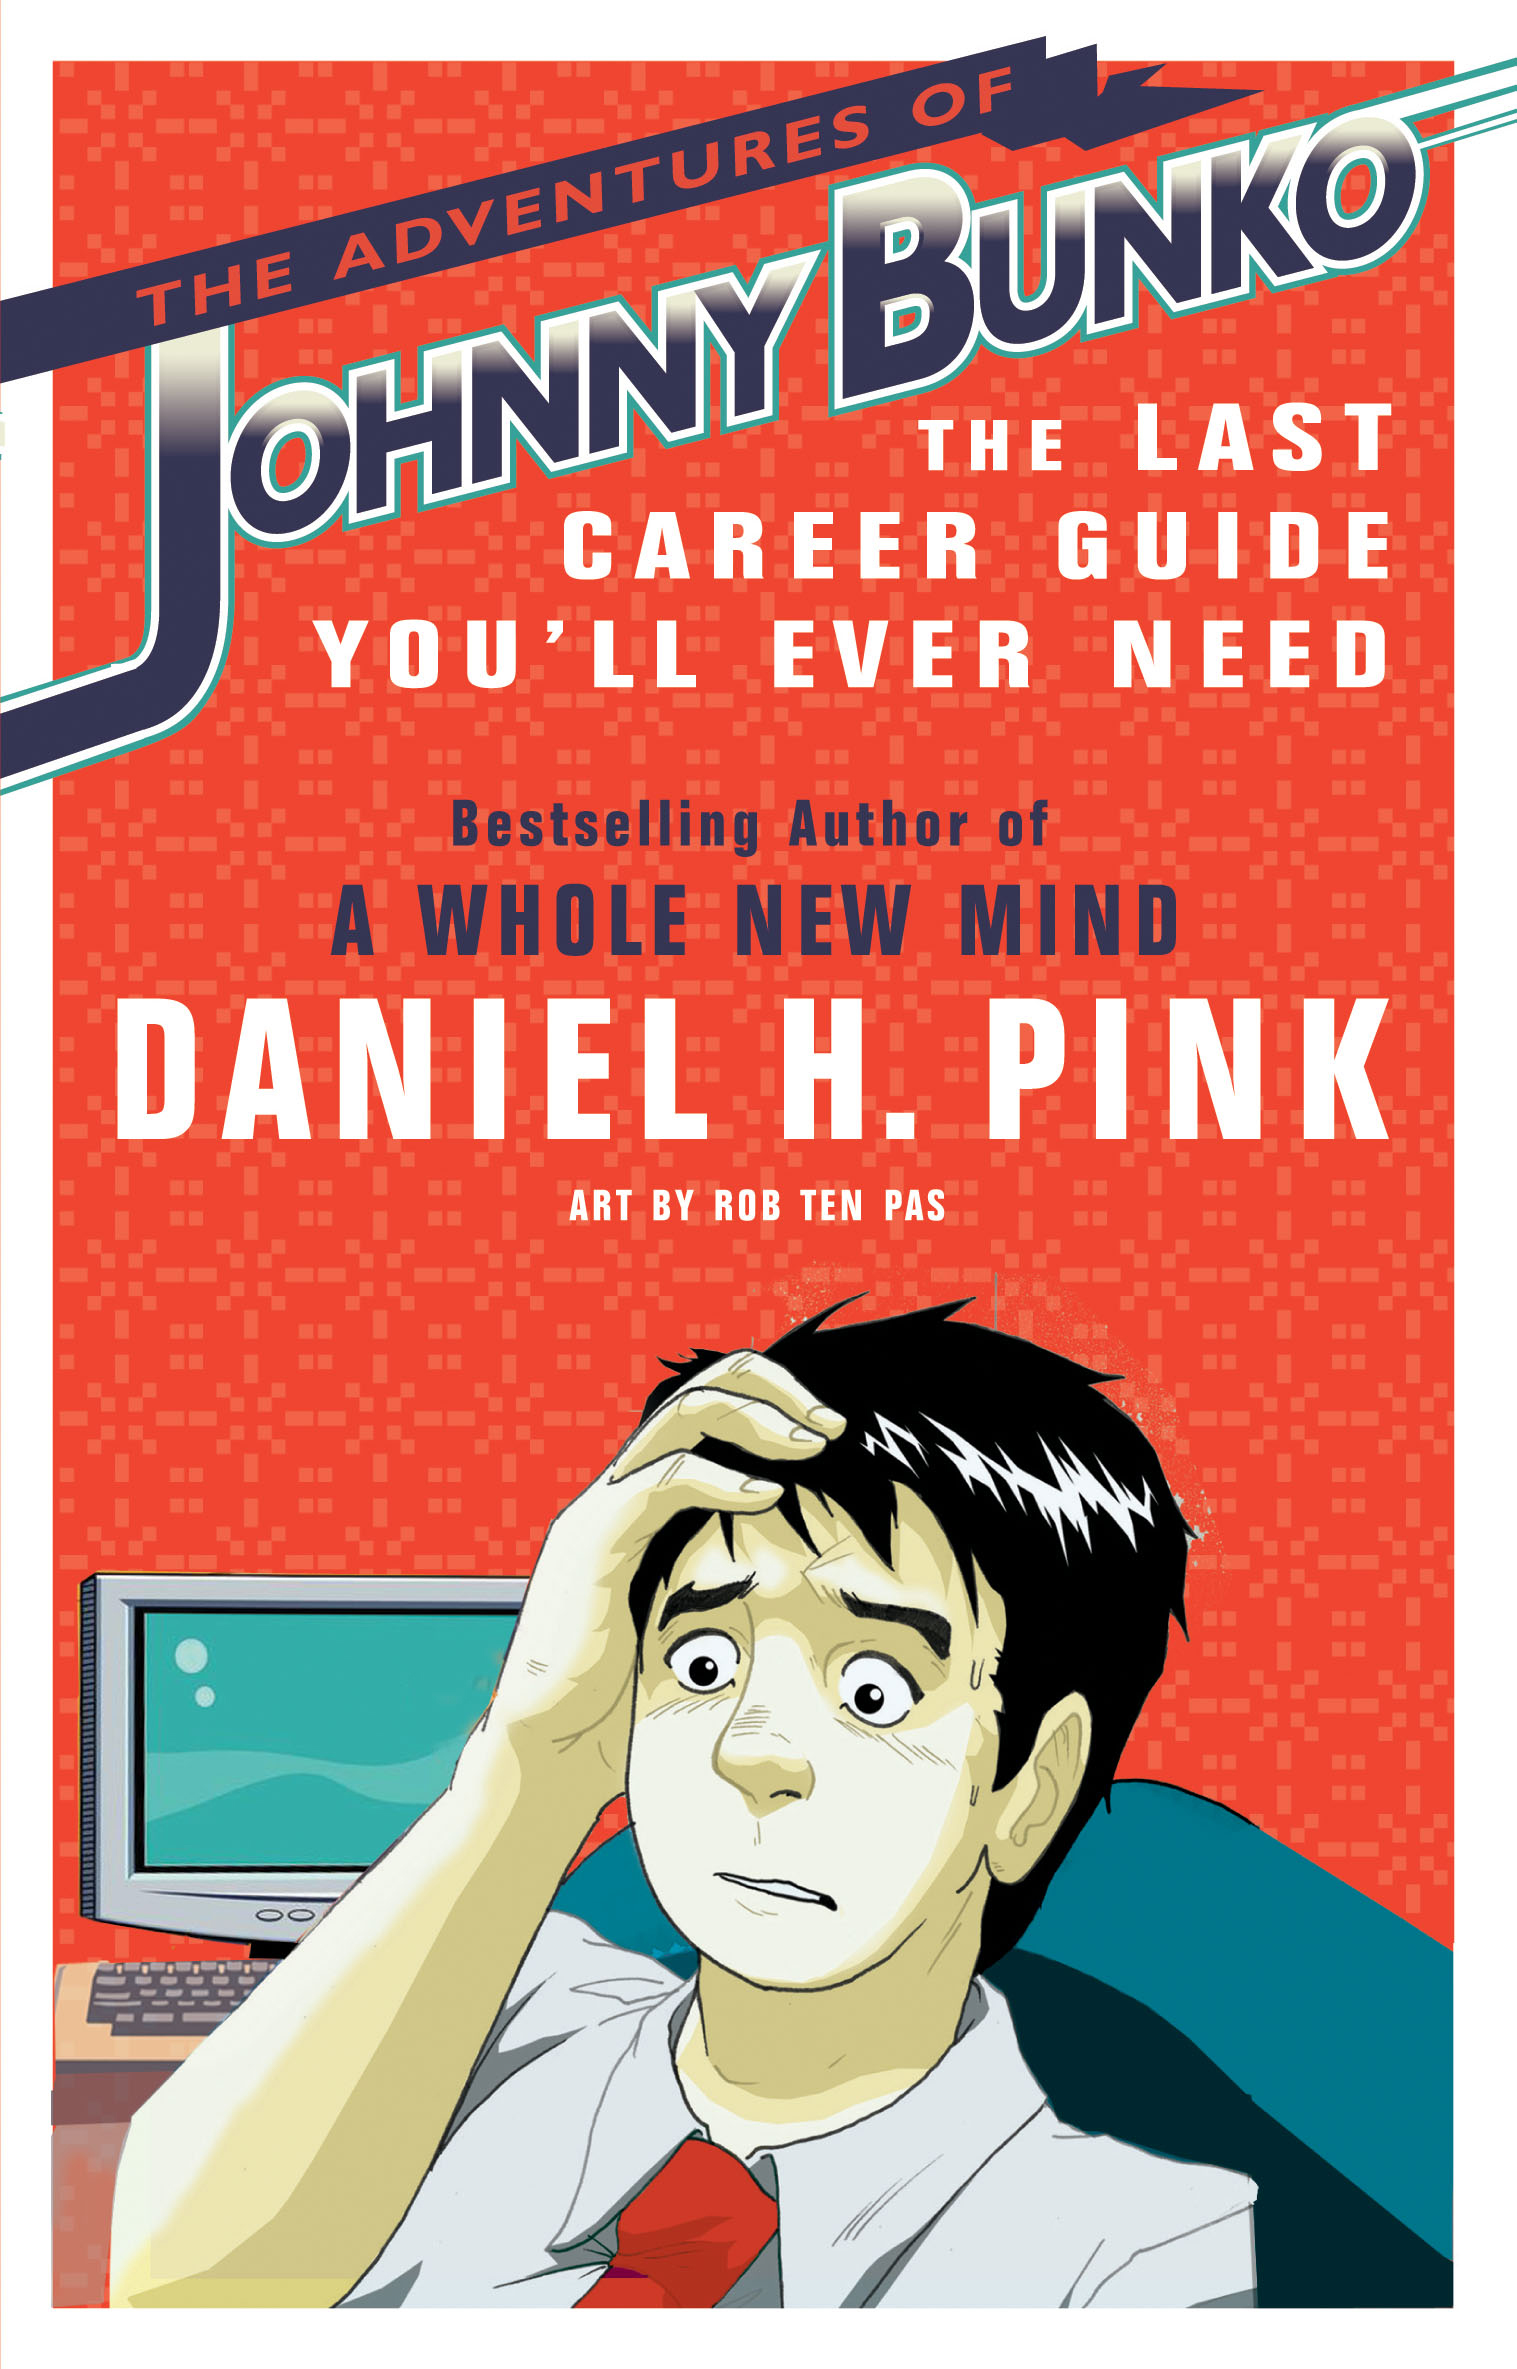 Download Ebook The Adventures of Johnny Bunko by Daniel H. Pink Pdf